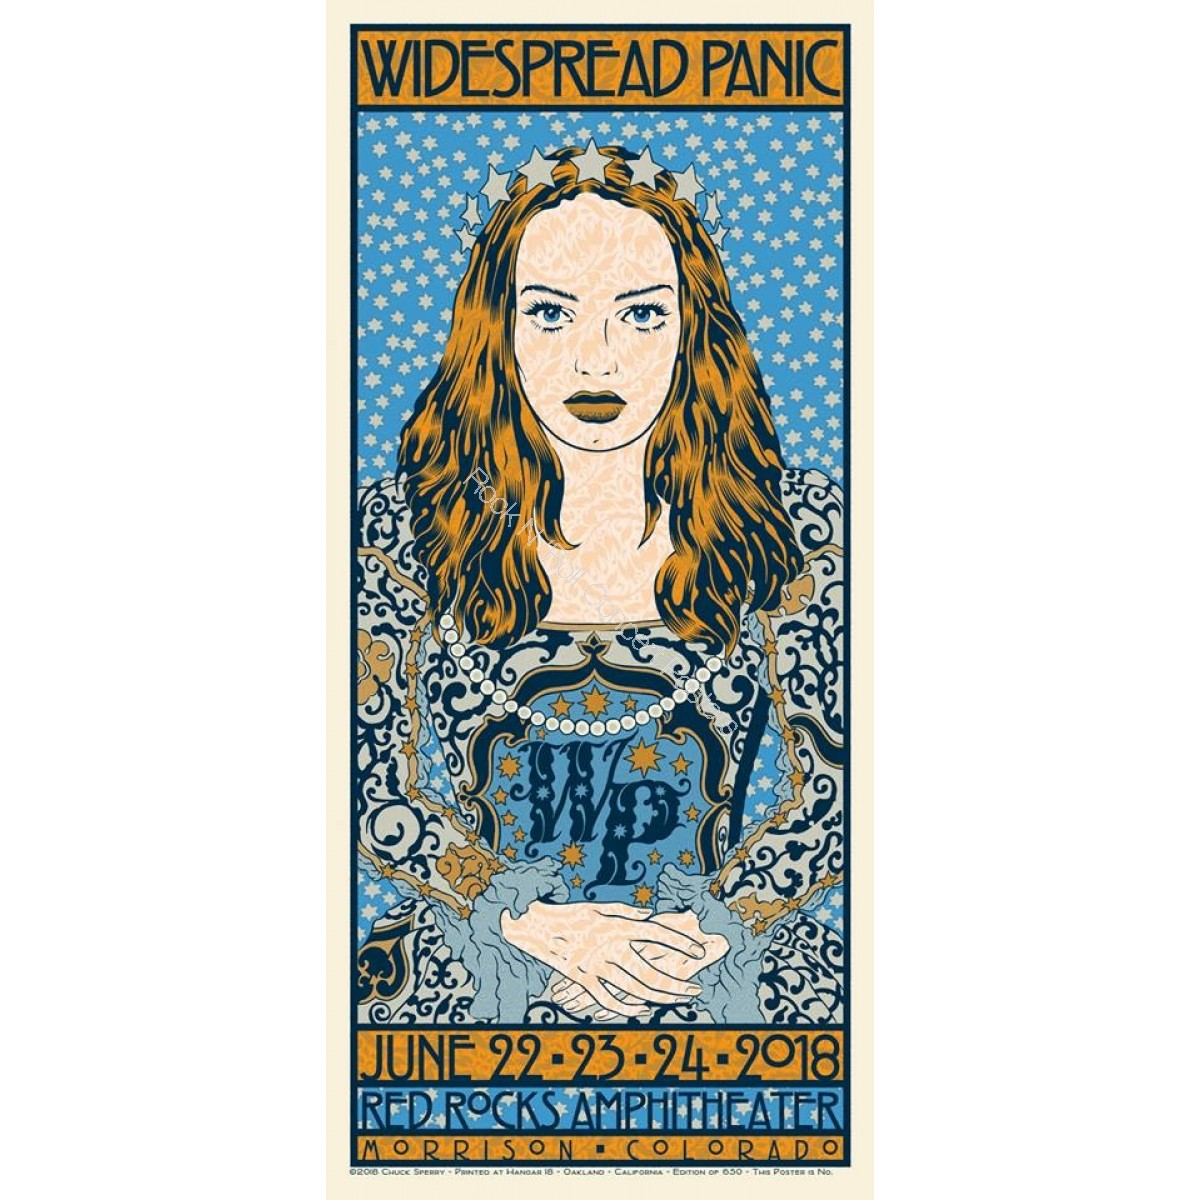 Widespread Panic Red Rocks Amphitheater Colorado June 22-24th 2018 LE Screen Print Poster By Chuck Sperry